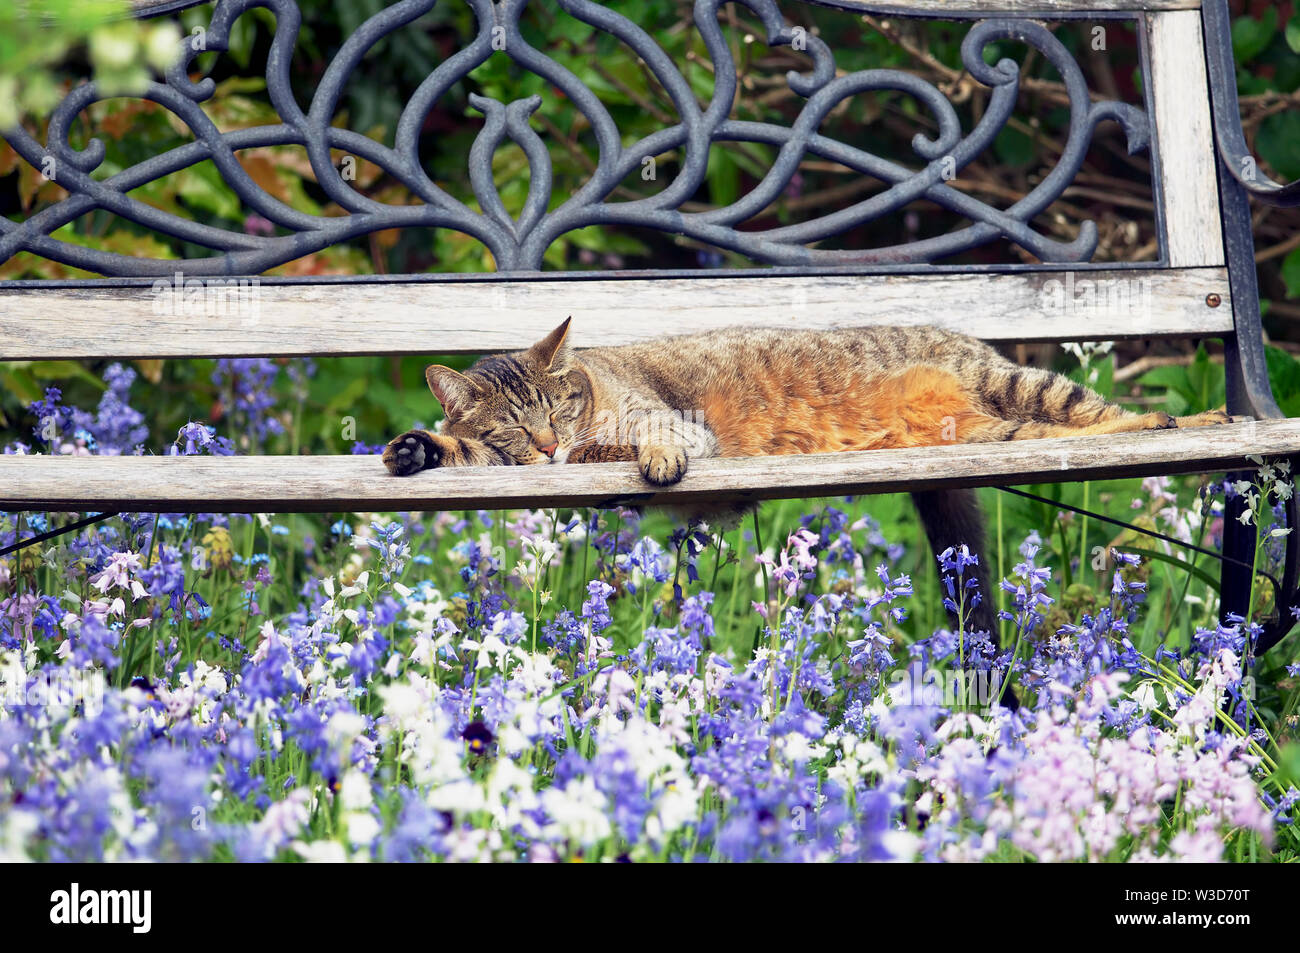 Tremendous A Mackerel Tabby Cat Felis Catus Sleeping On A Garden Inzonedesignstudio Interior Chair Design Inzonedesignstudiocom